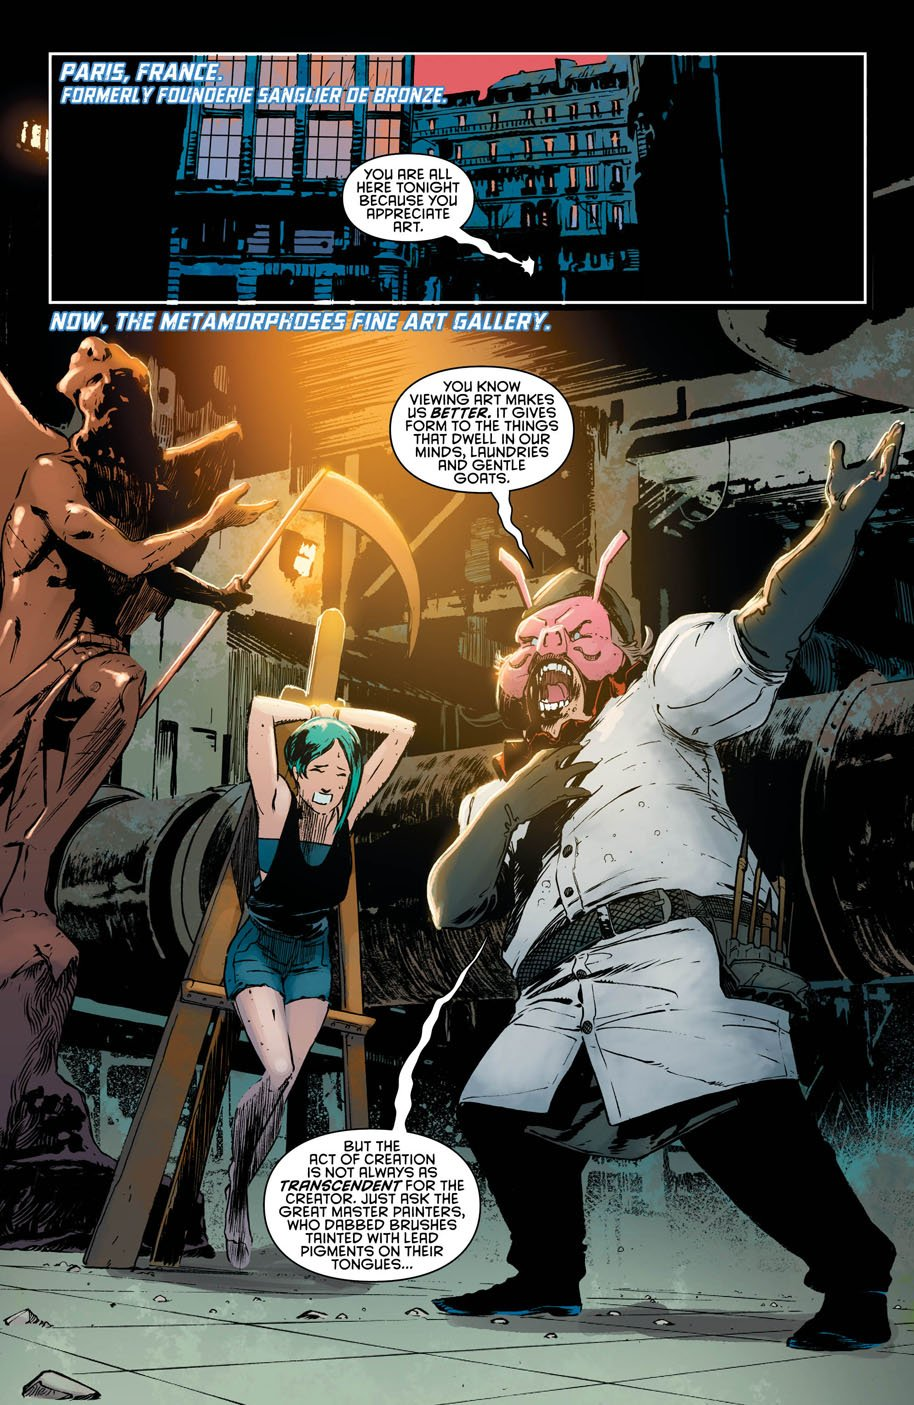 Nightwing #18 Review